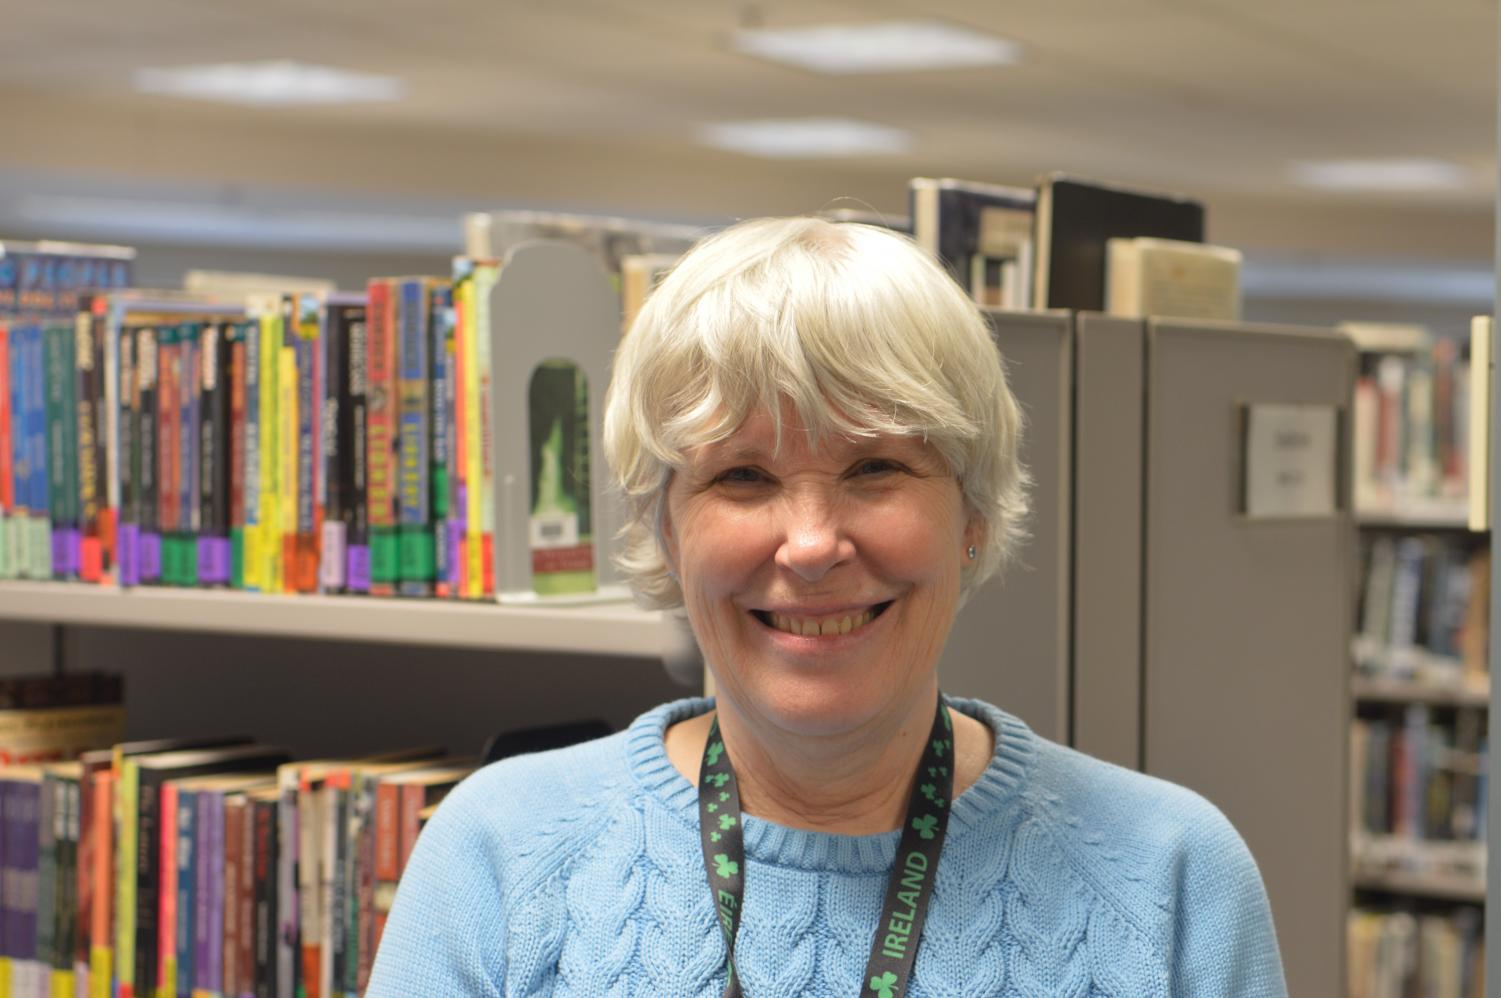 Library media specialist Ellen George was diagnosed with stage four uterine cancer in 2005. George reflects on her battle to beat the disease.